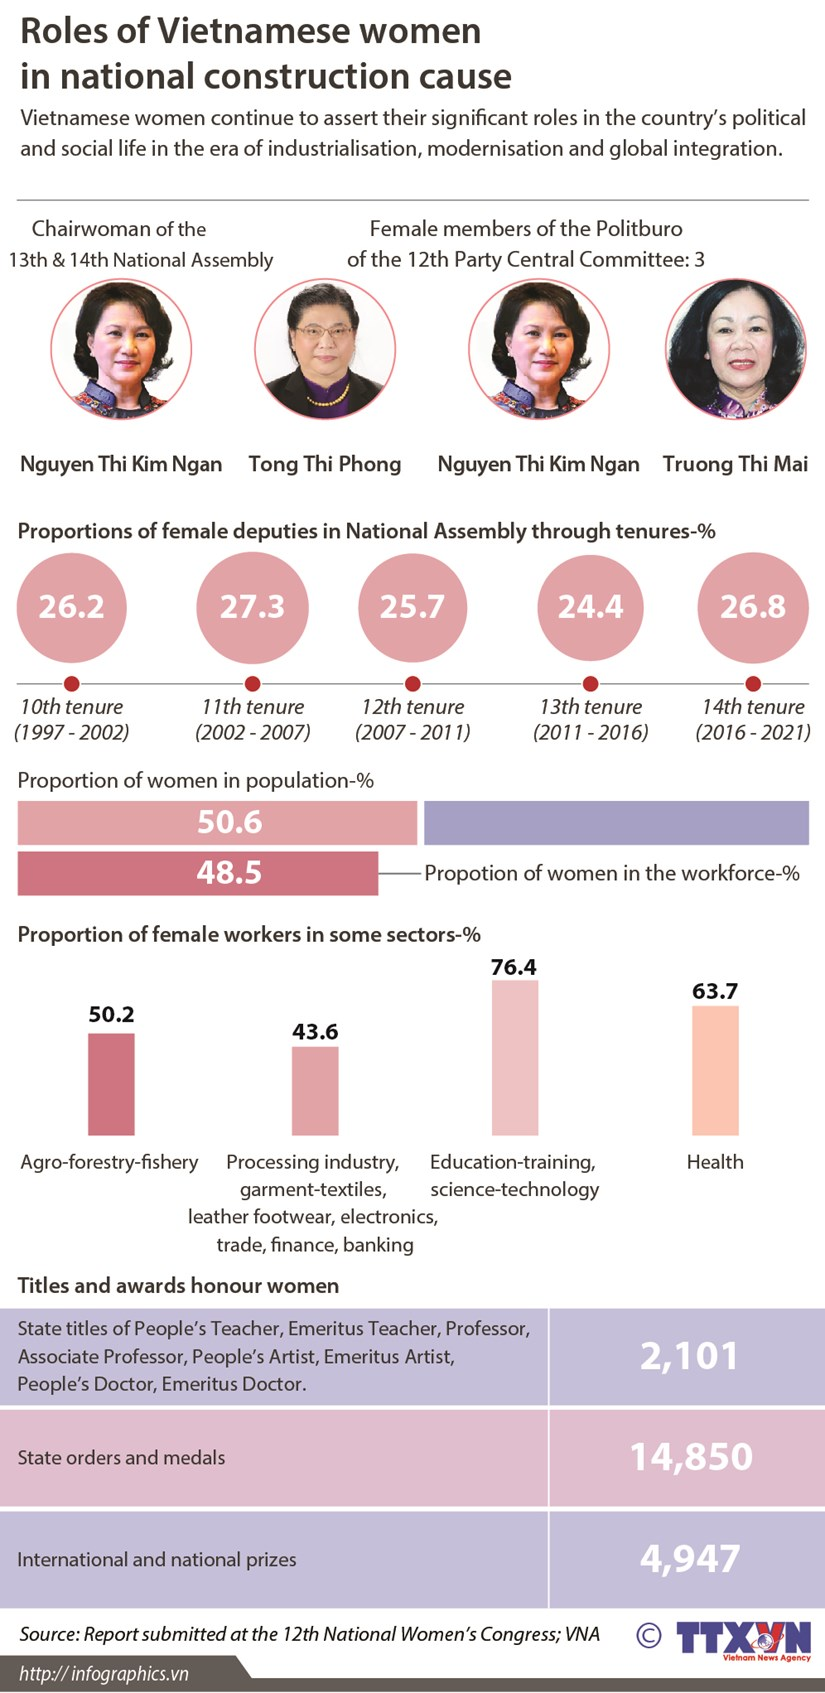 Roles of Vietnamese women in national construction cause hinh anh 1